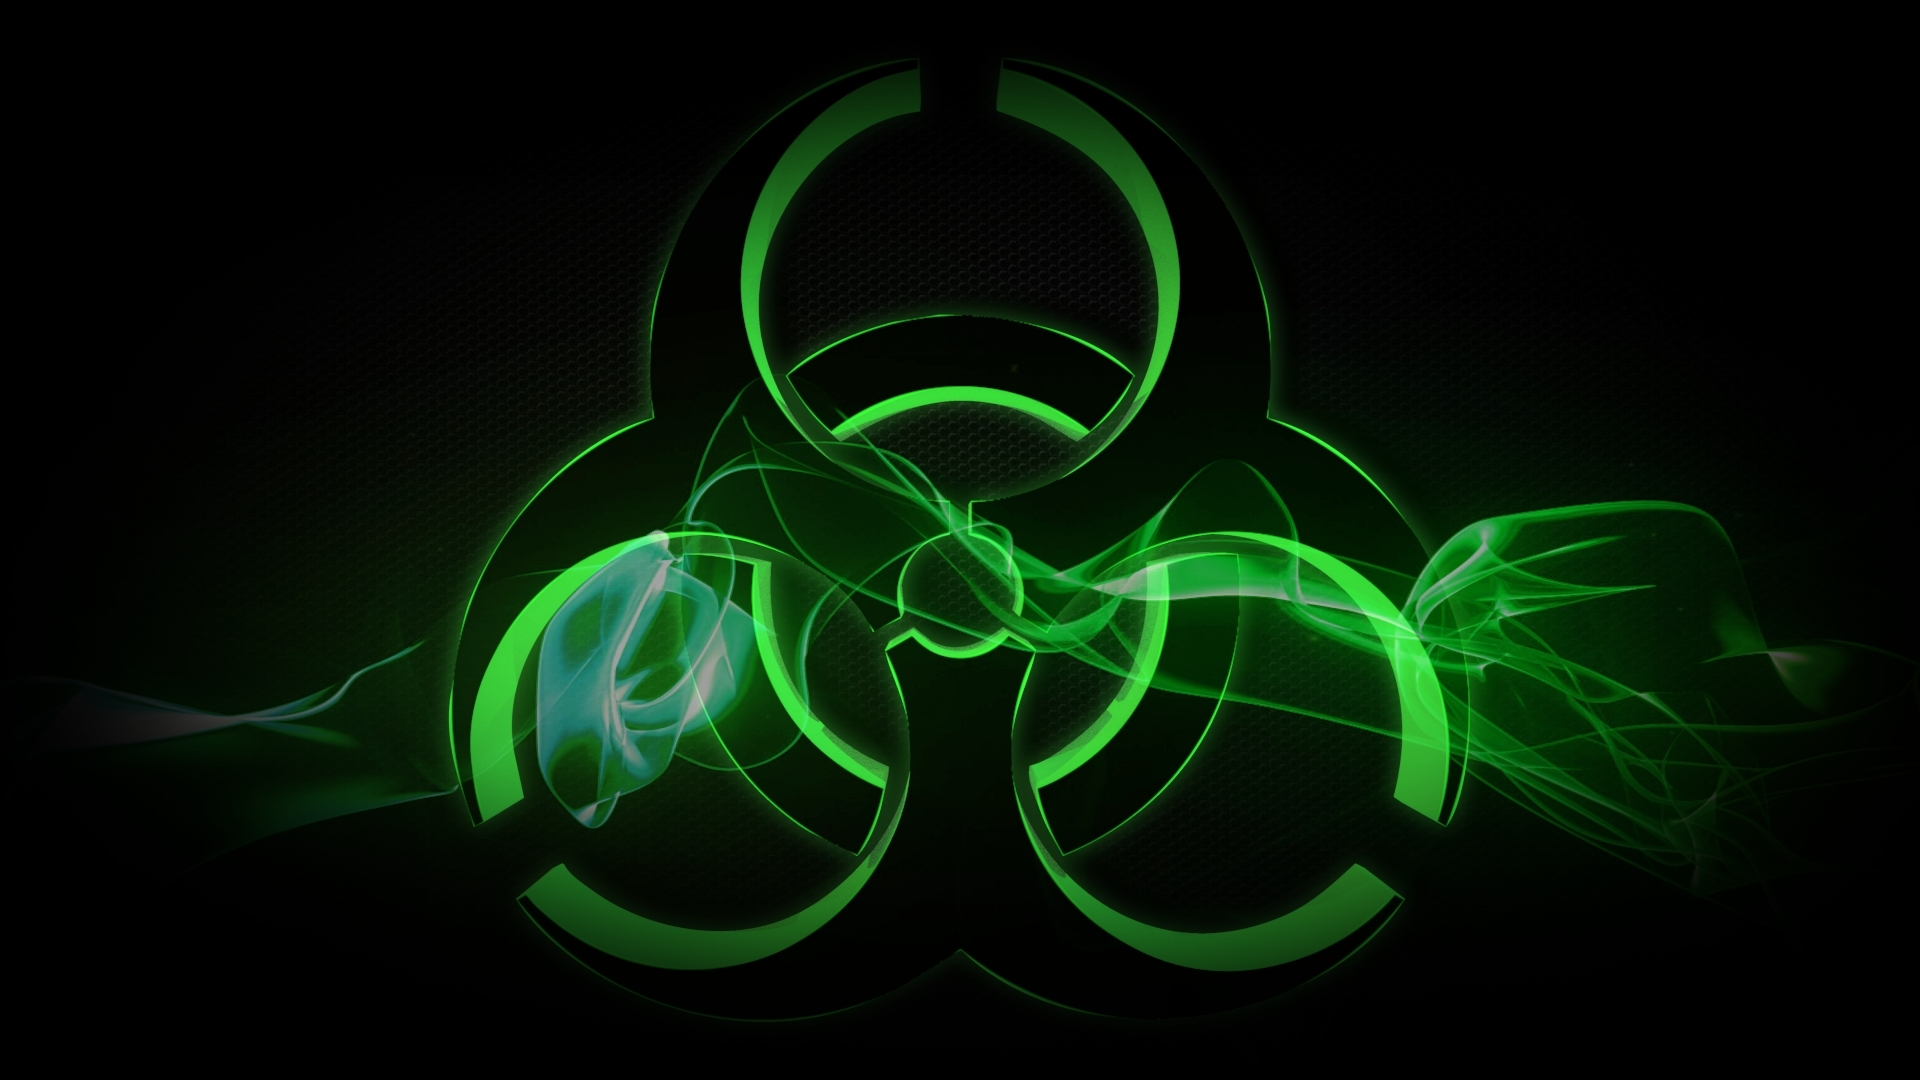 Download wallpaper 1920x1080 radiation sign symbol background radiation sign symbol biocorpaavc Image collections